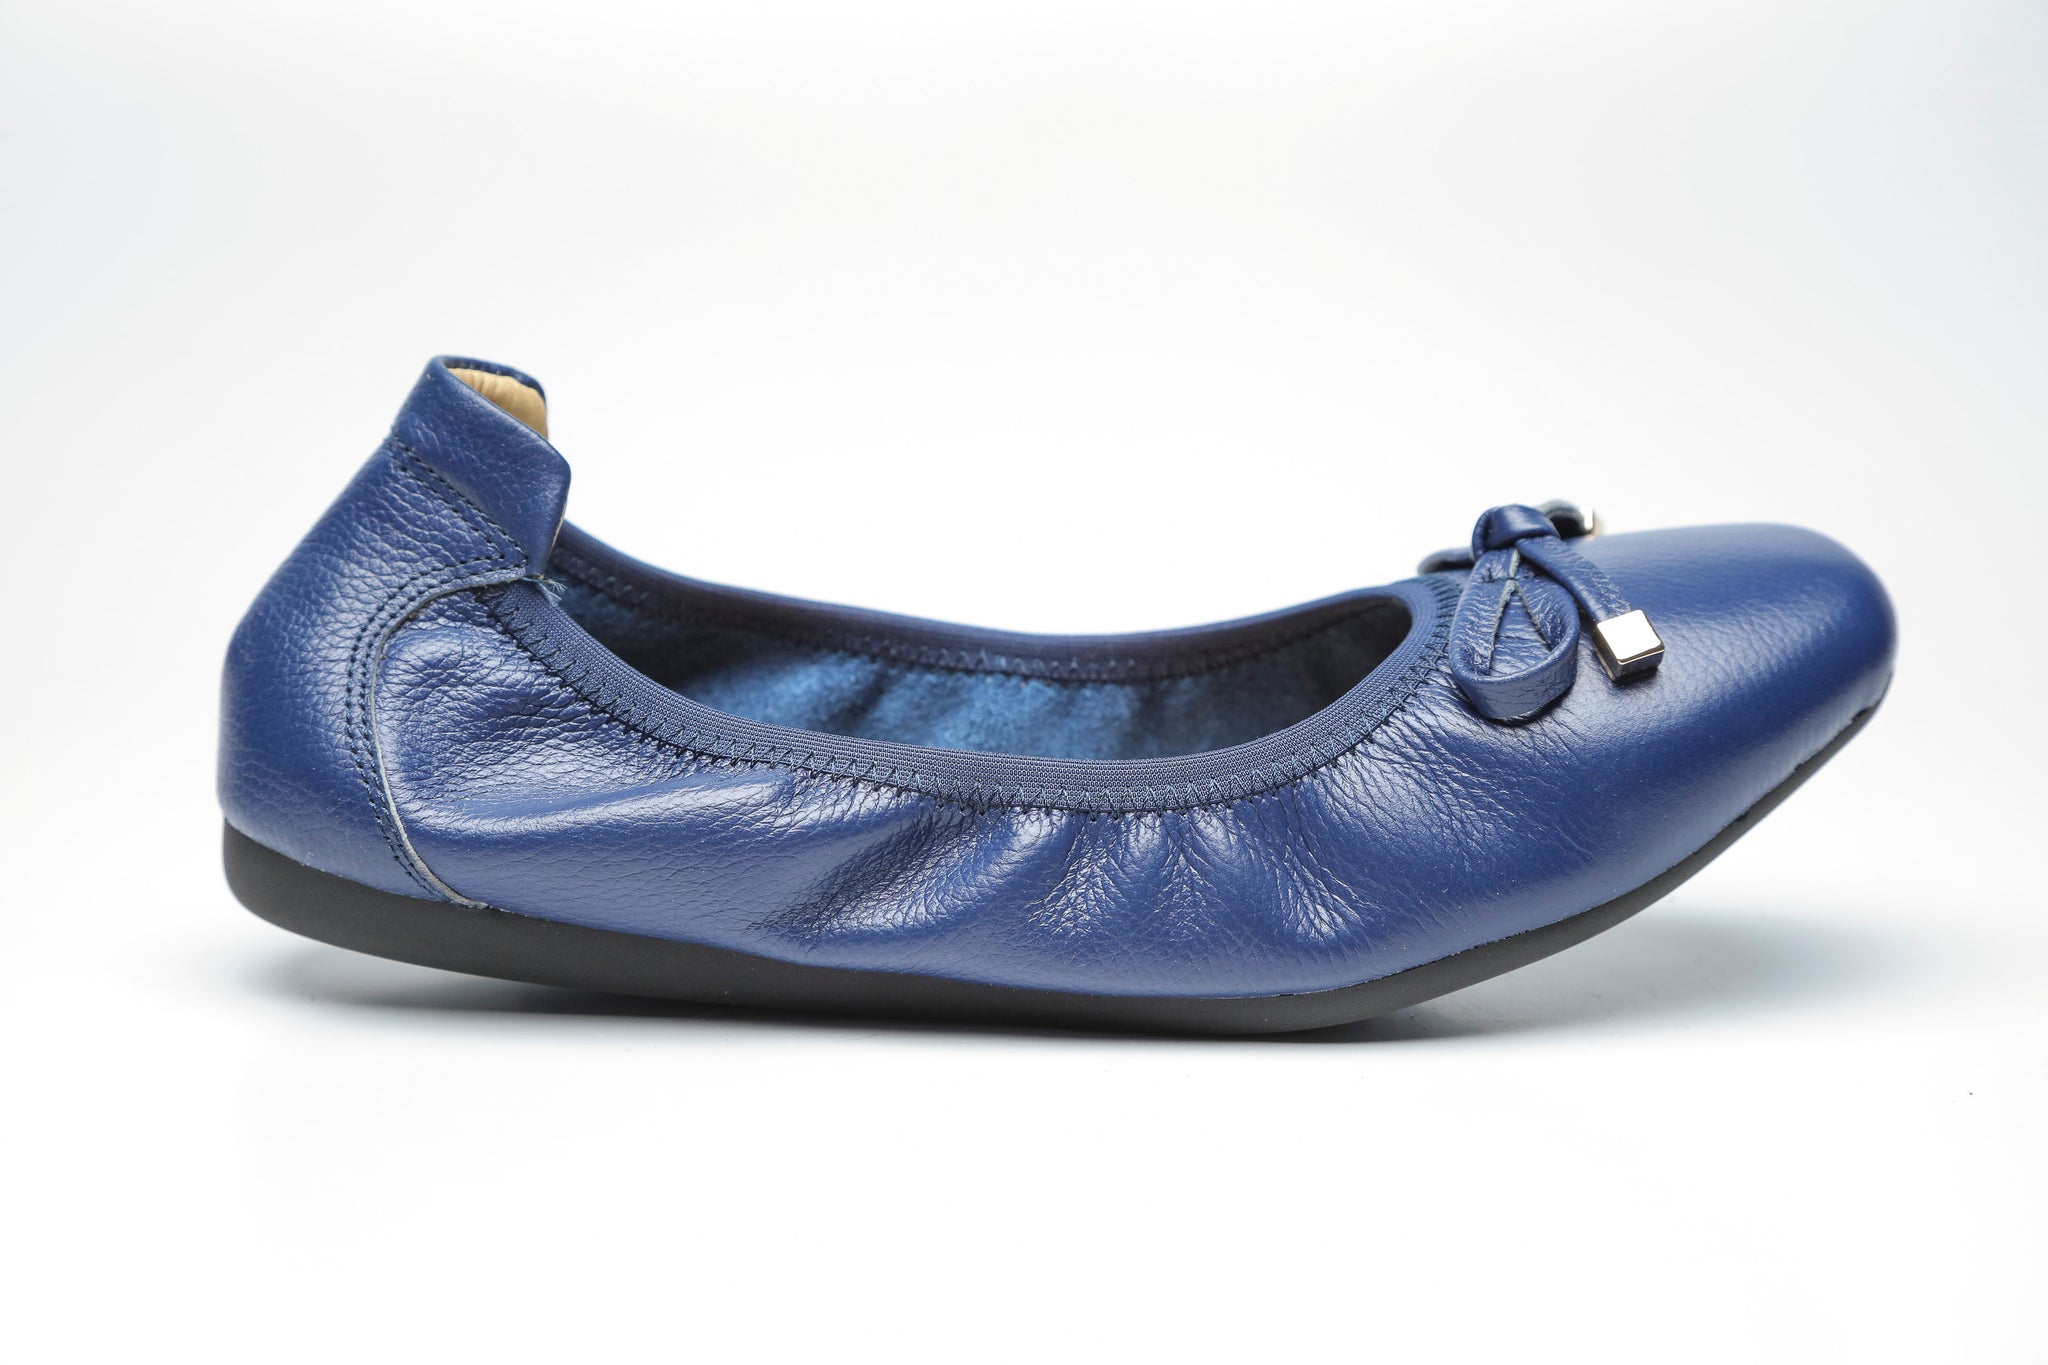 163-3  Leather pumps with rubber sole on SALE R200 off - Sam Star shoes